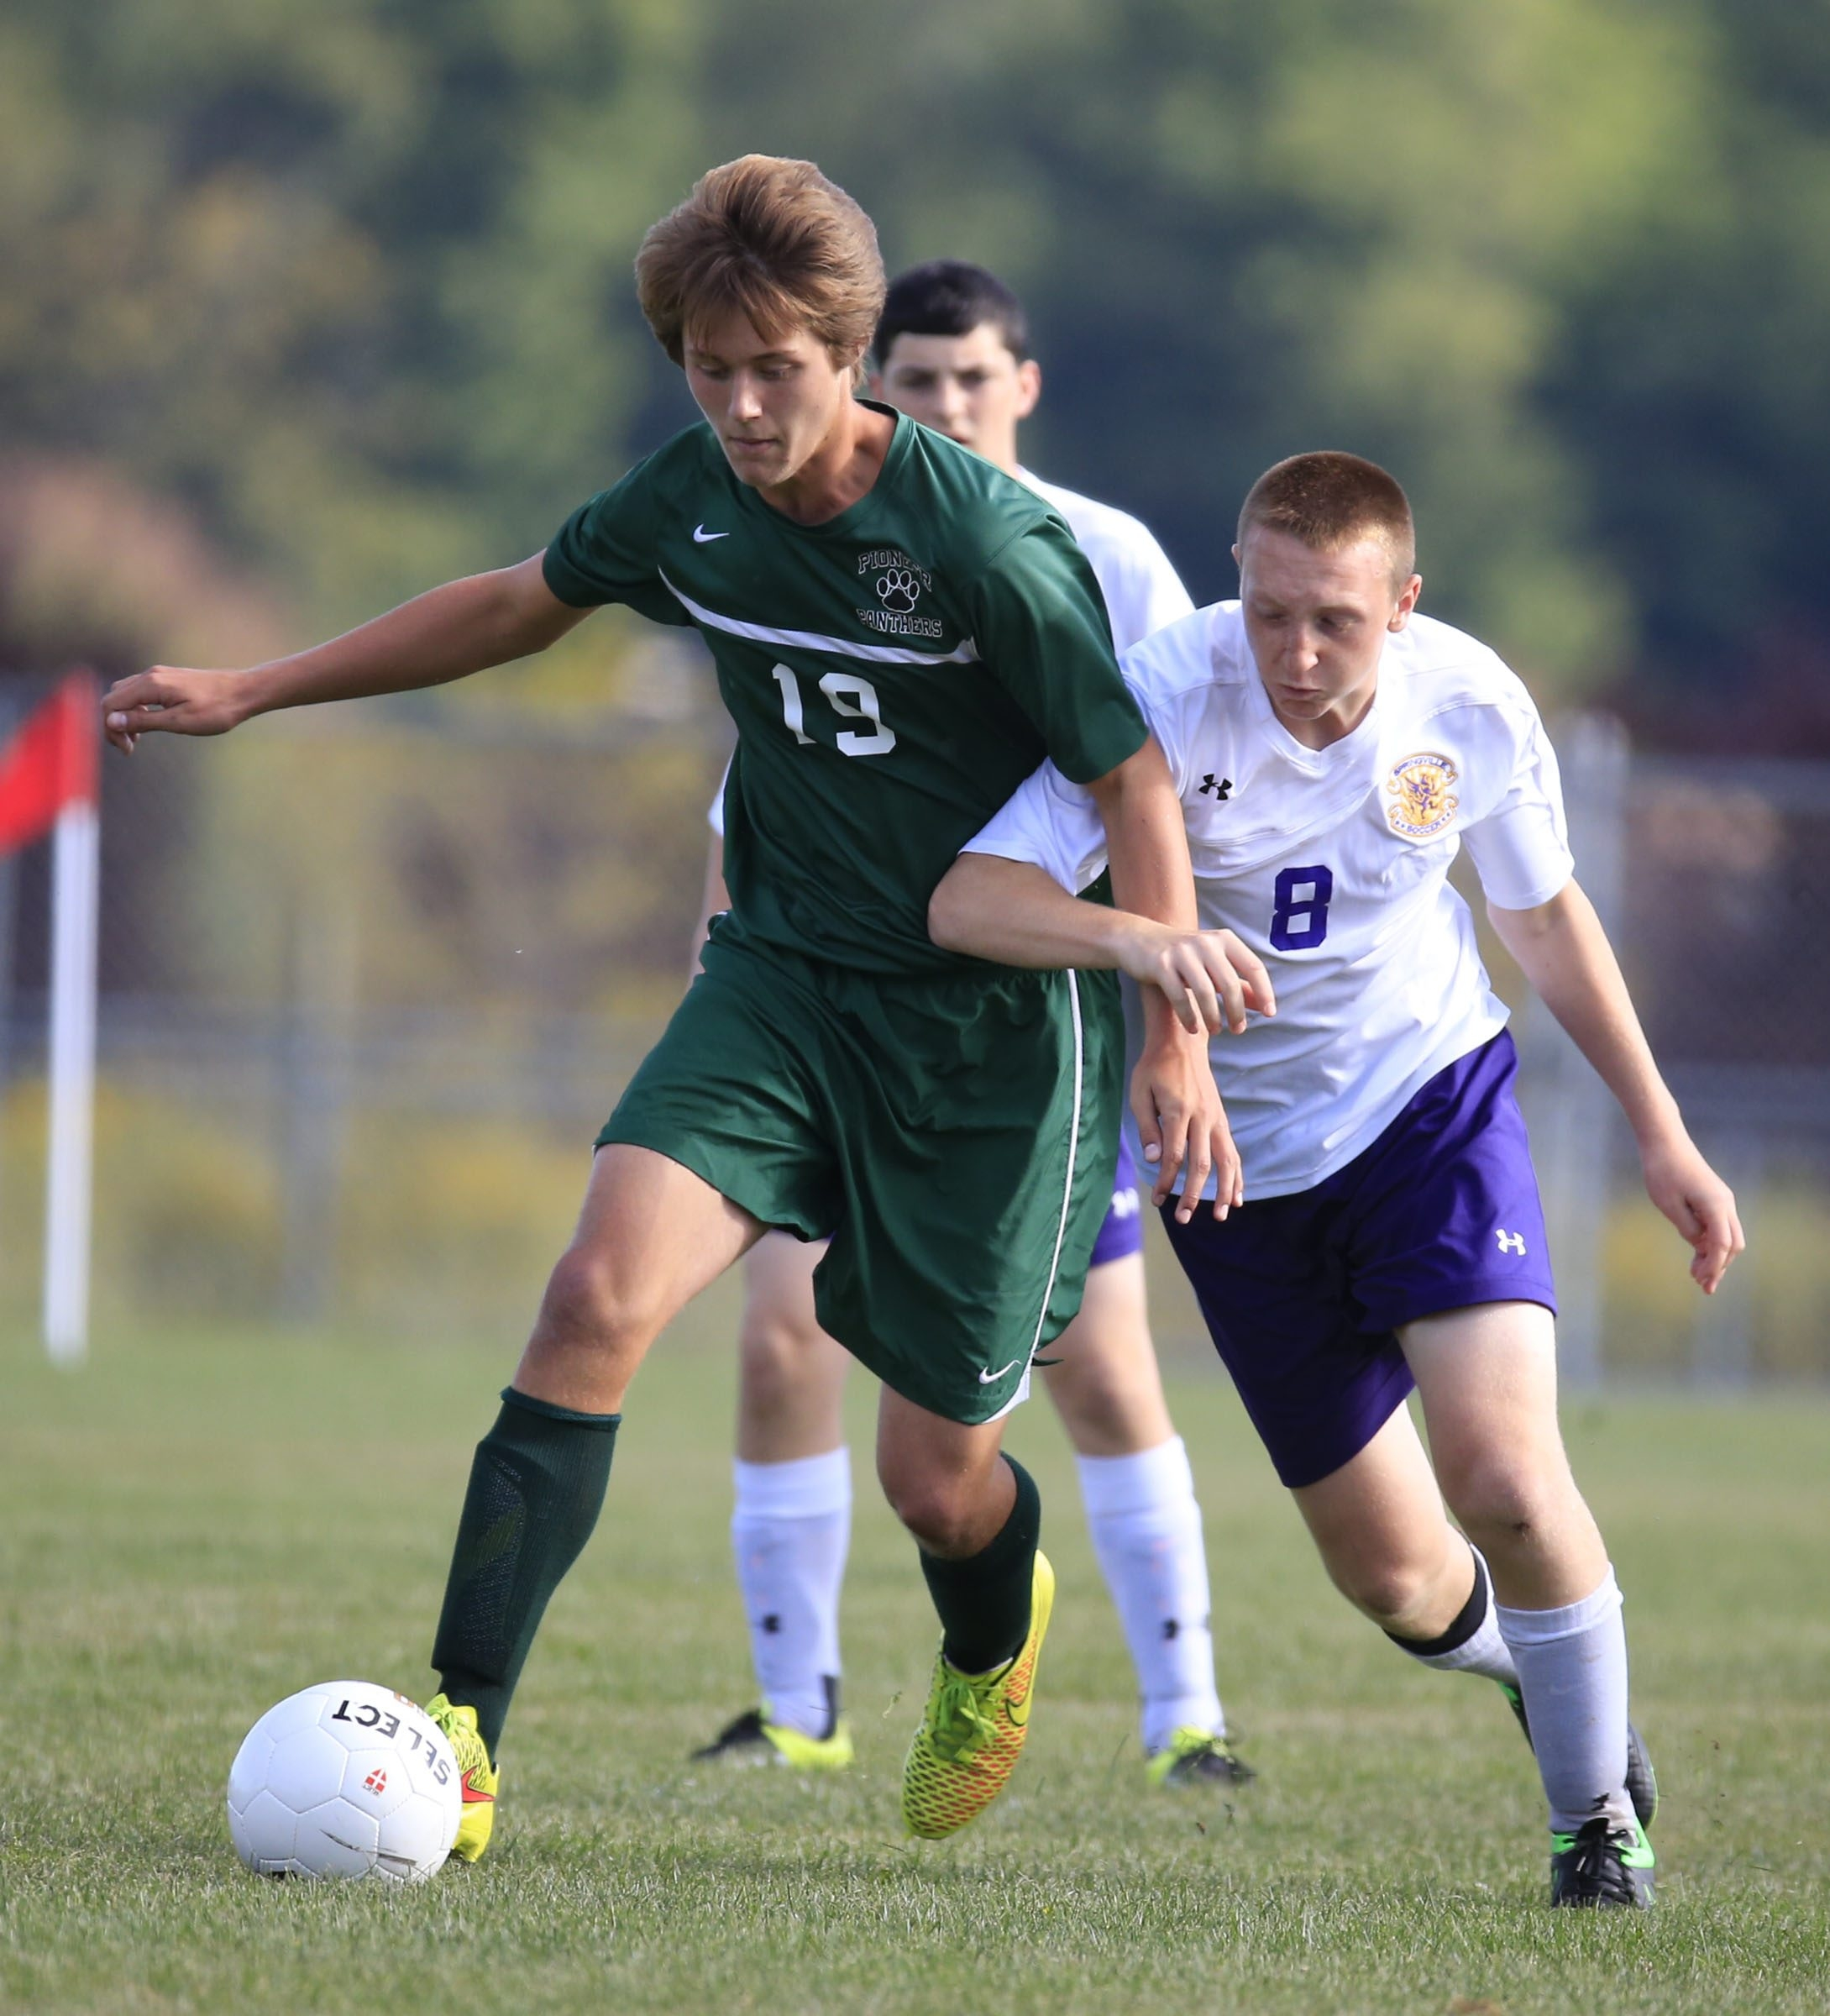 Springville's Matthew Scion and Pioneer's Kyle Burley battle during the first half of Friday's game.